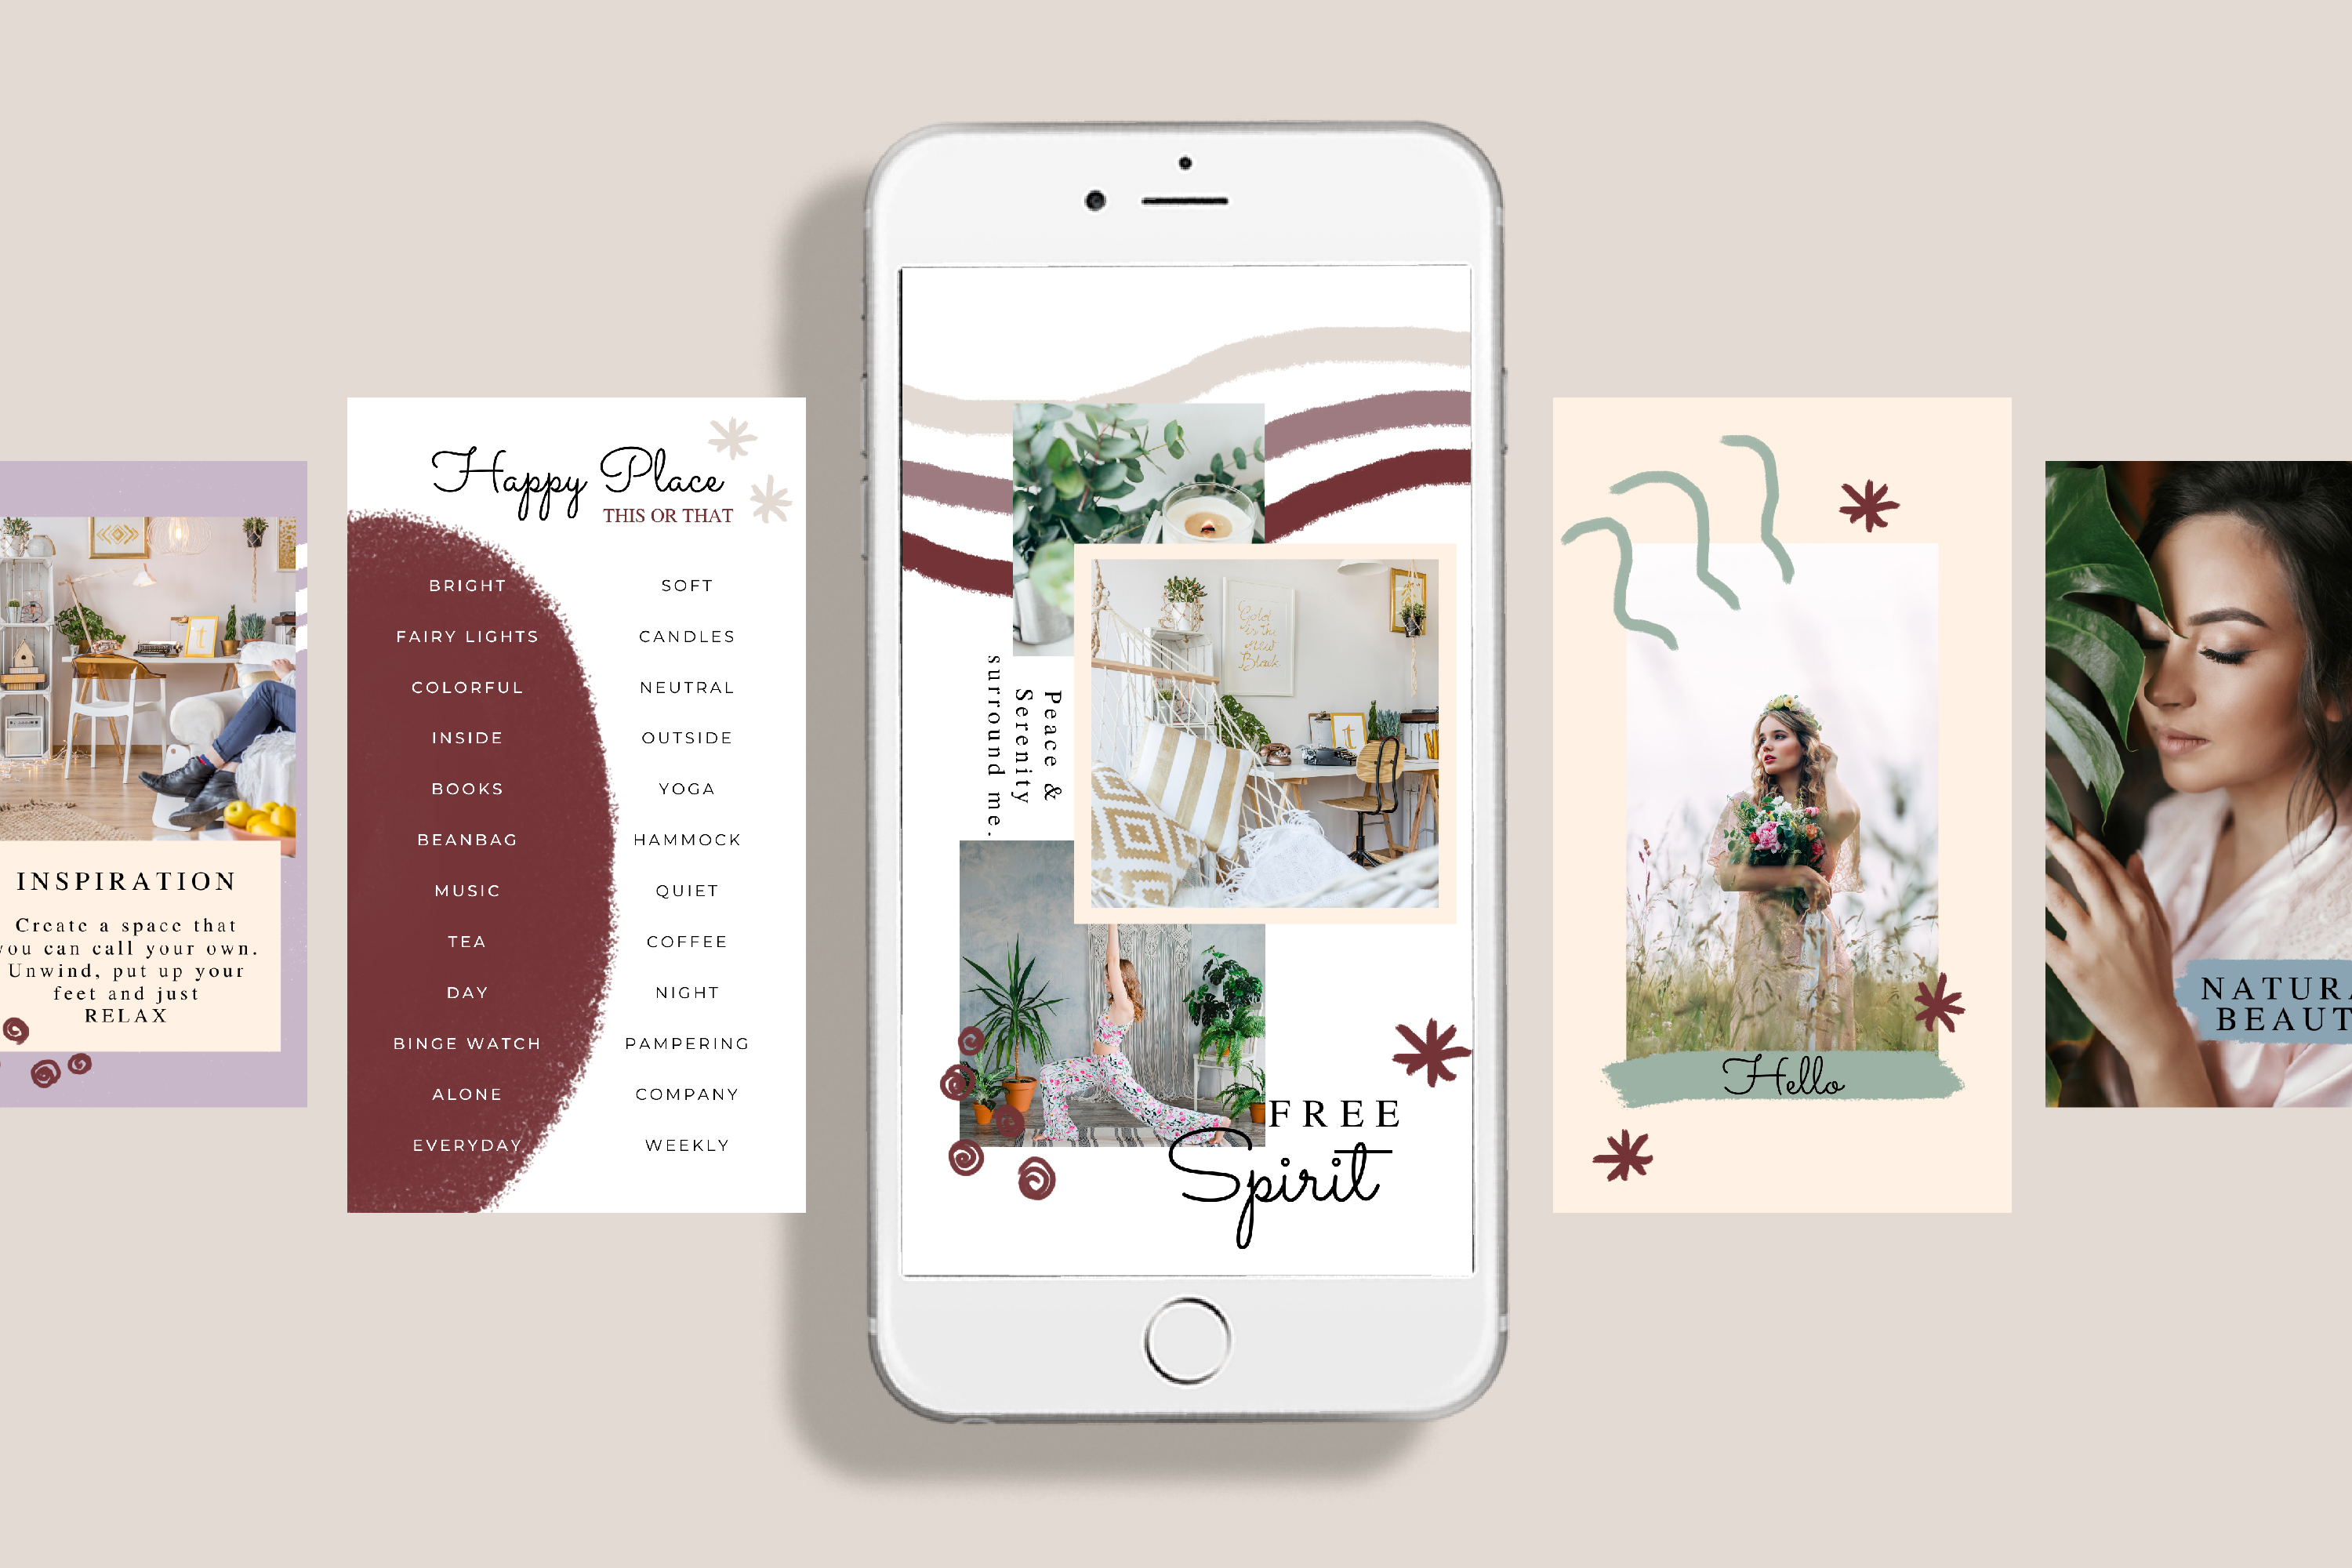 Instagram Story Canva Template - Free Spirit example image 2